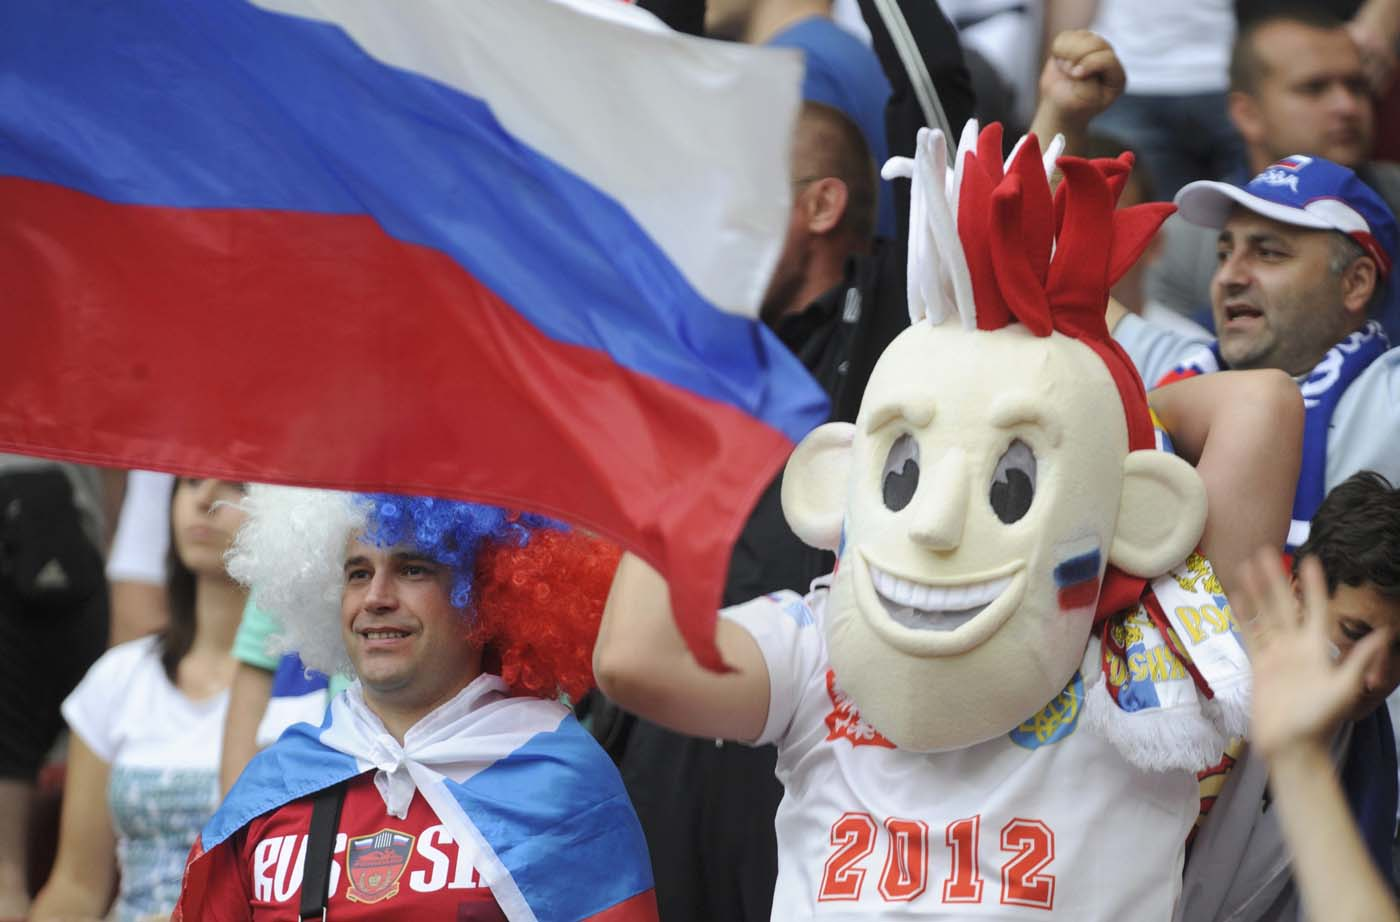 Russia's soccer fans cheer before the Group A Euro 2012 soccer match against Poland at national stadium in Warsaw June 12, 2012. (Pawel Ulatowski/Reuters)